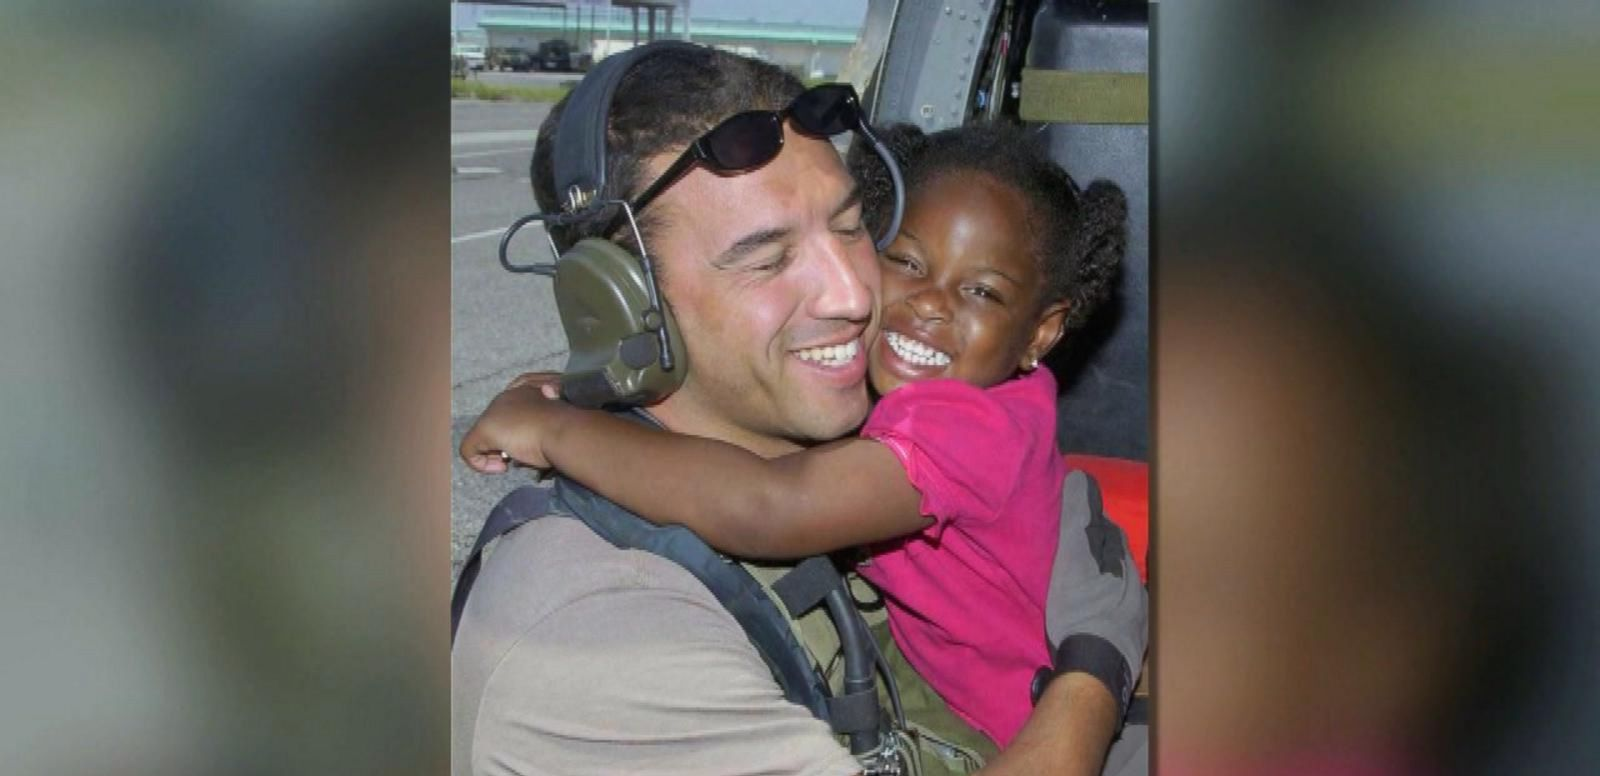 VIDEO: Master Sgt. Michael Maroney started a social media campaign to reconnect with the 3-year-old girl he was photographed rescuing in 2005.